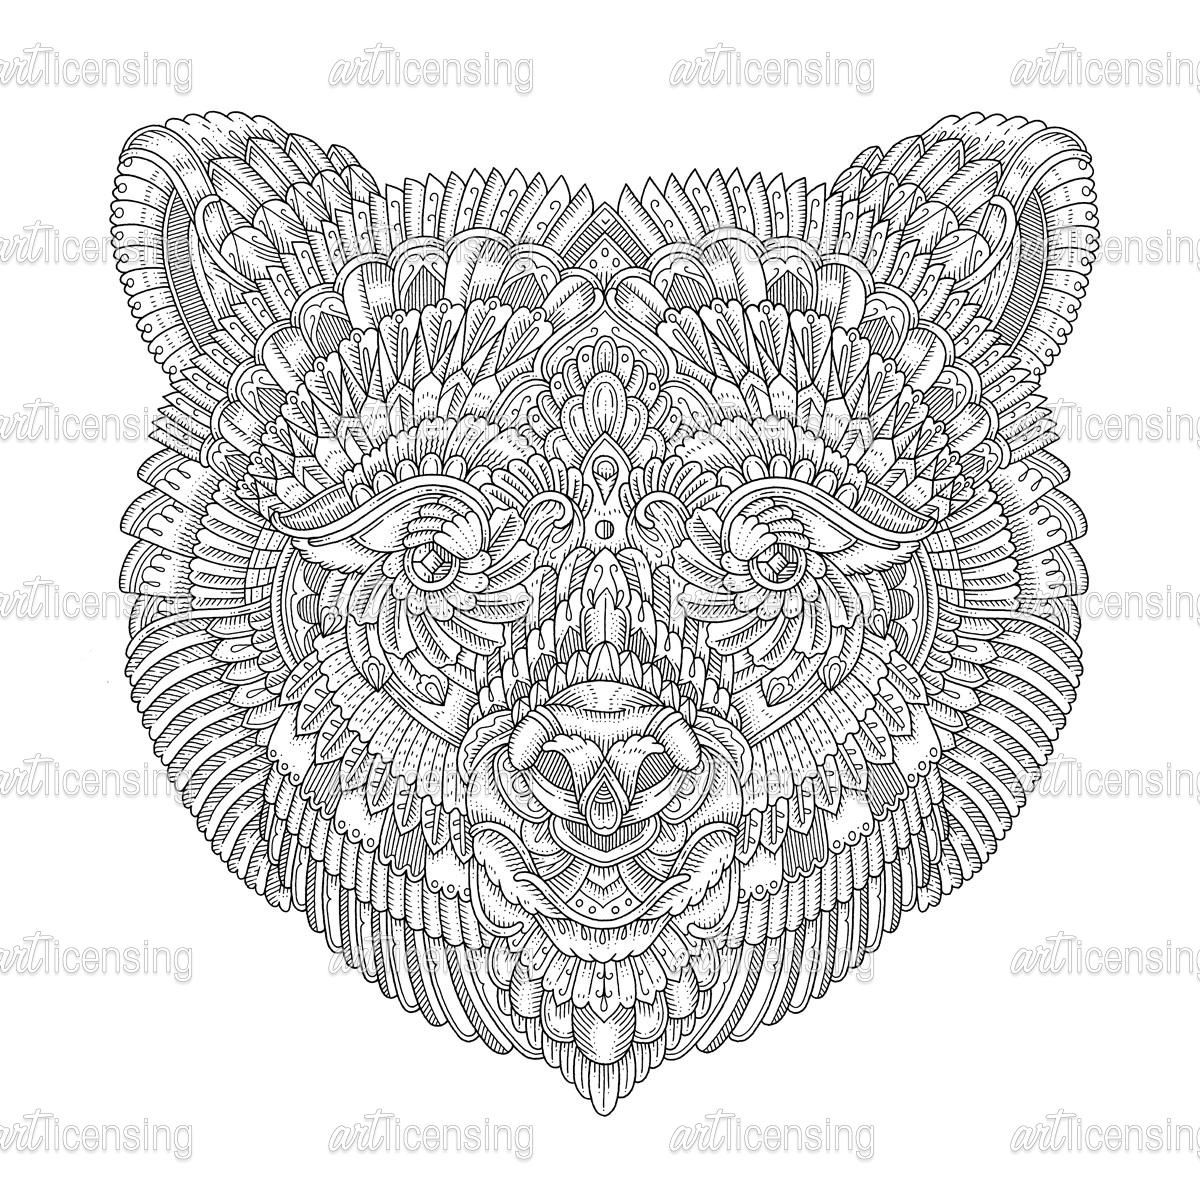 72 Top Coloring Pages Of Spirit Animals Download Free Images